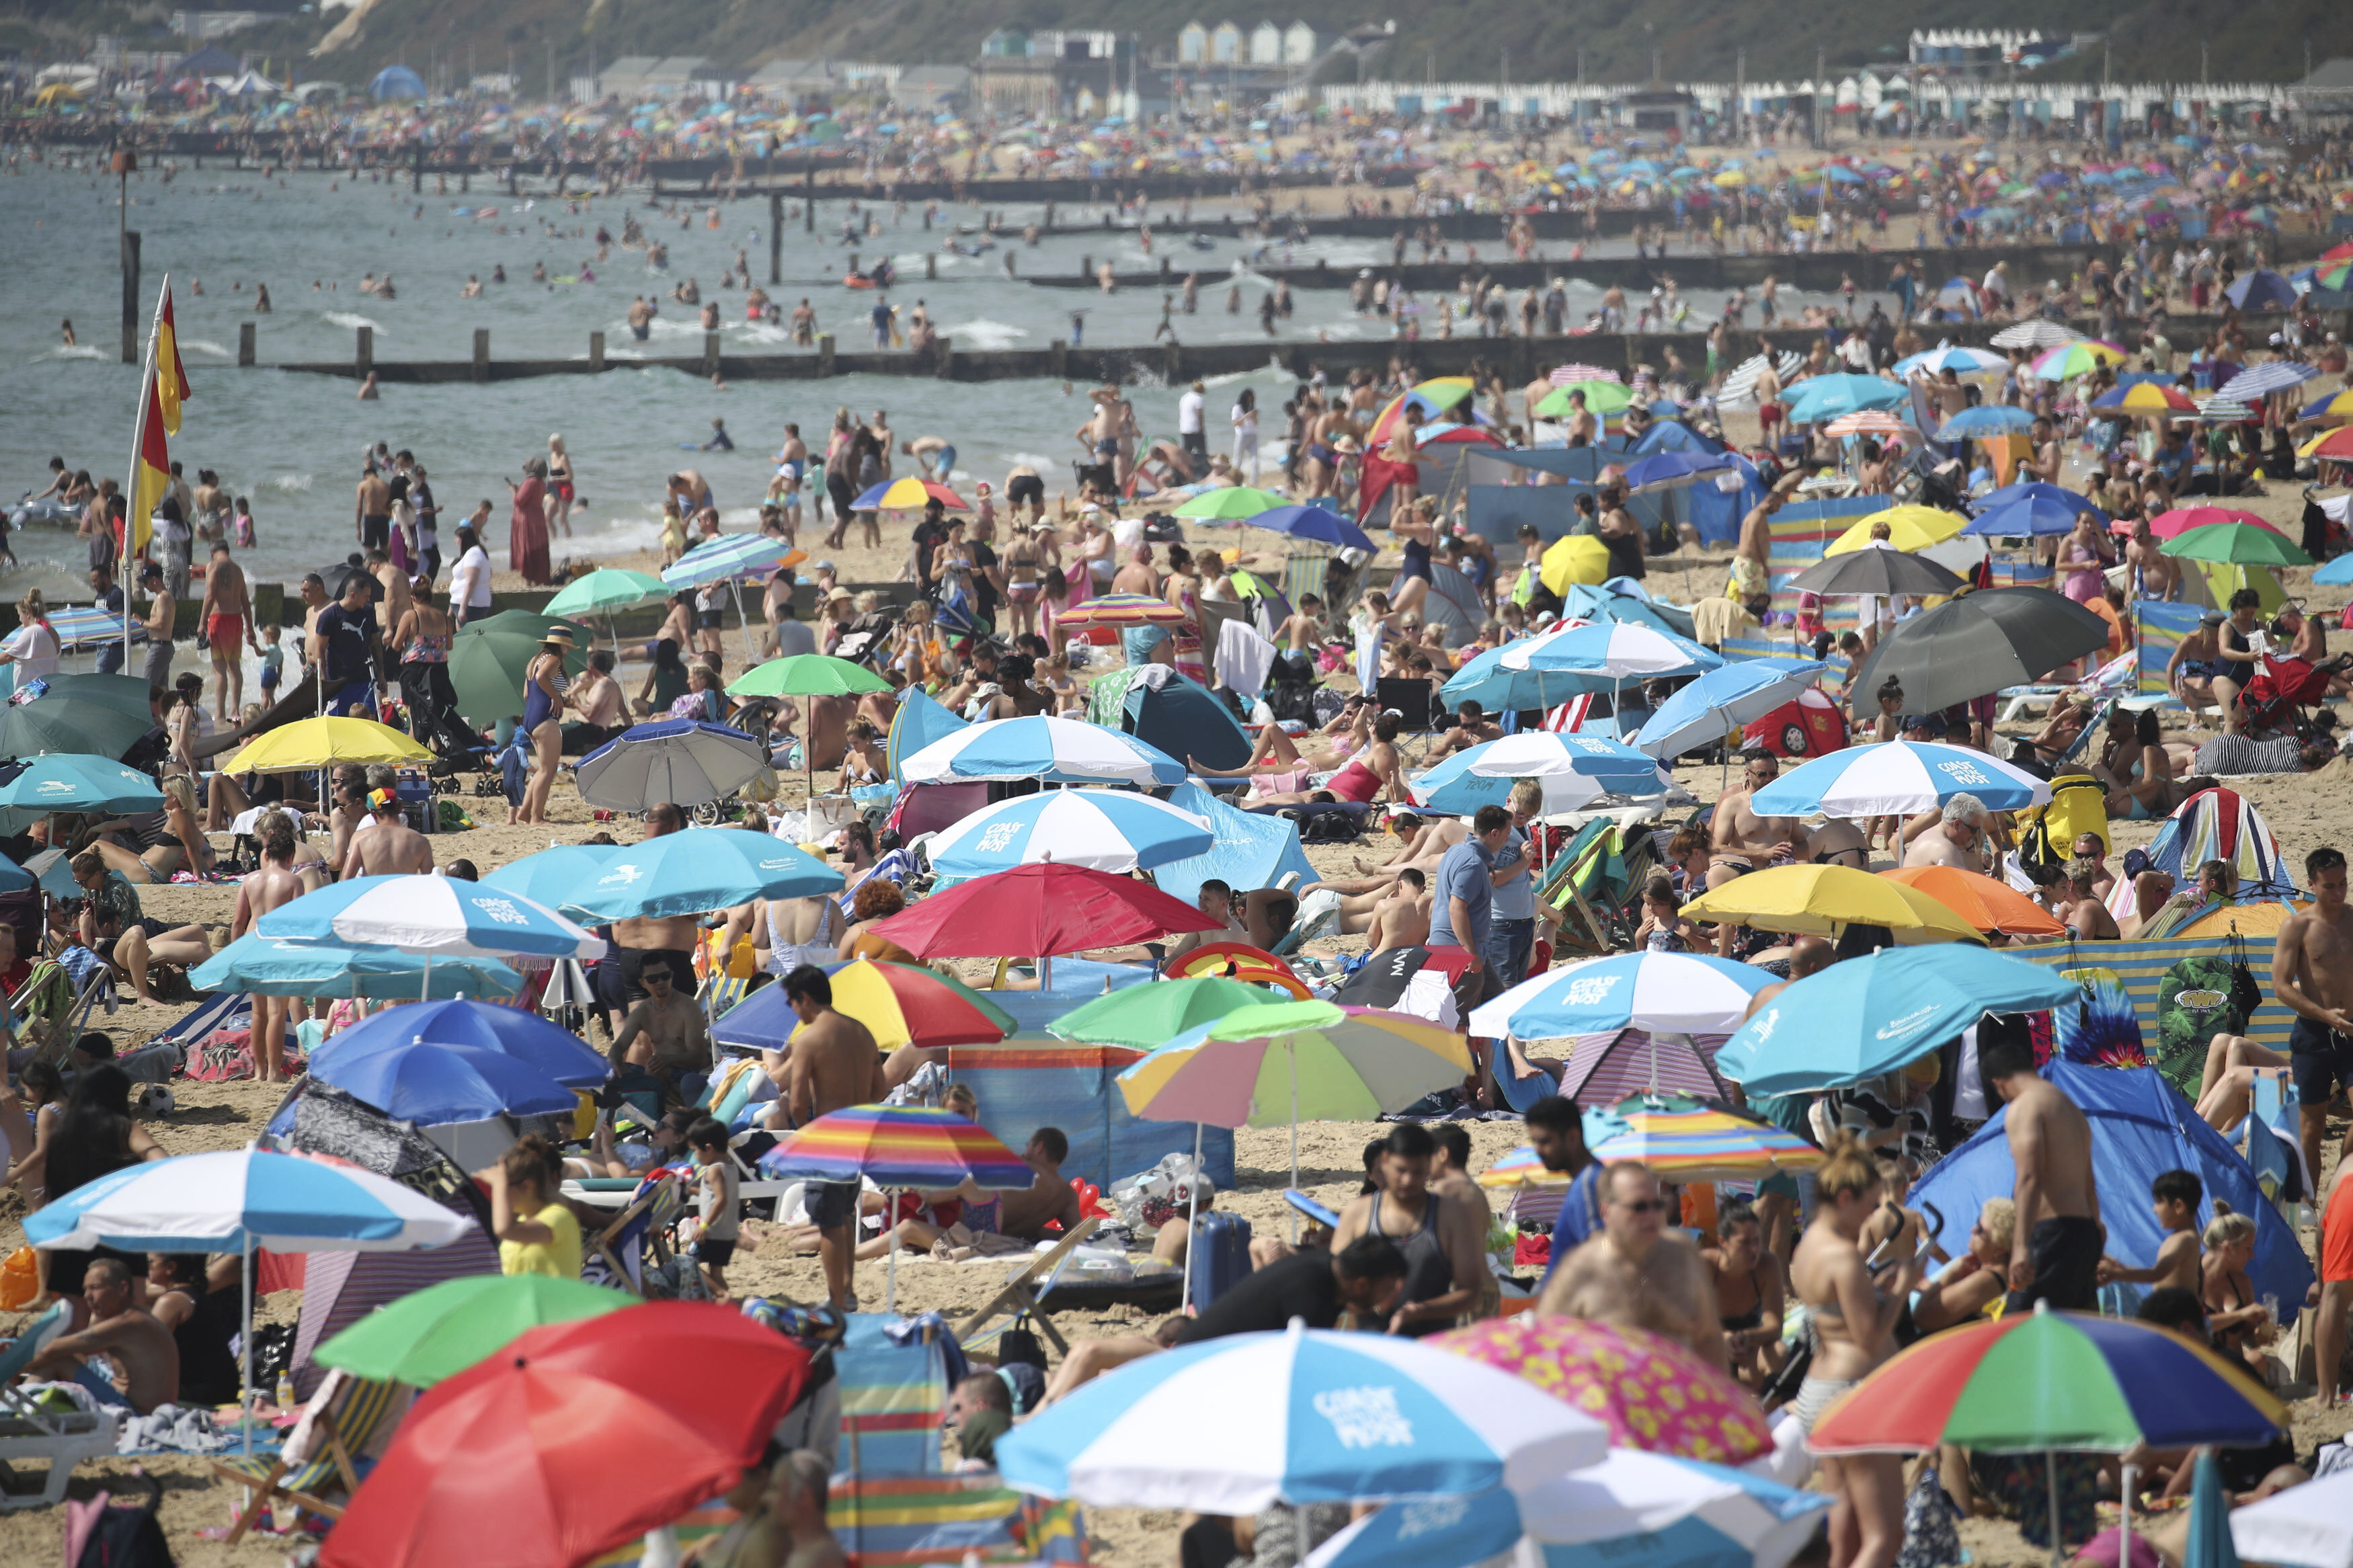 People enjoying the warm weather on Bournemouth beach, as a bank holiday heatwave will see most of Britain sizzling in sunshine with possible record temperatures, the Met Office has said. Saturday Aug, 24, 2019. |(|Andrew Matthews/PA via AP)